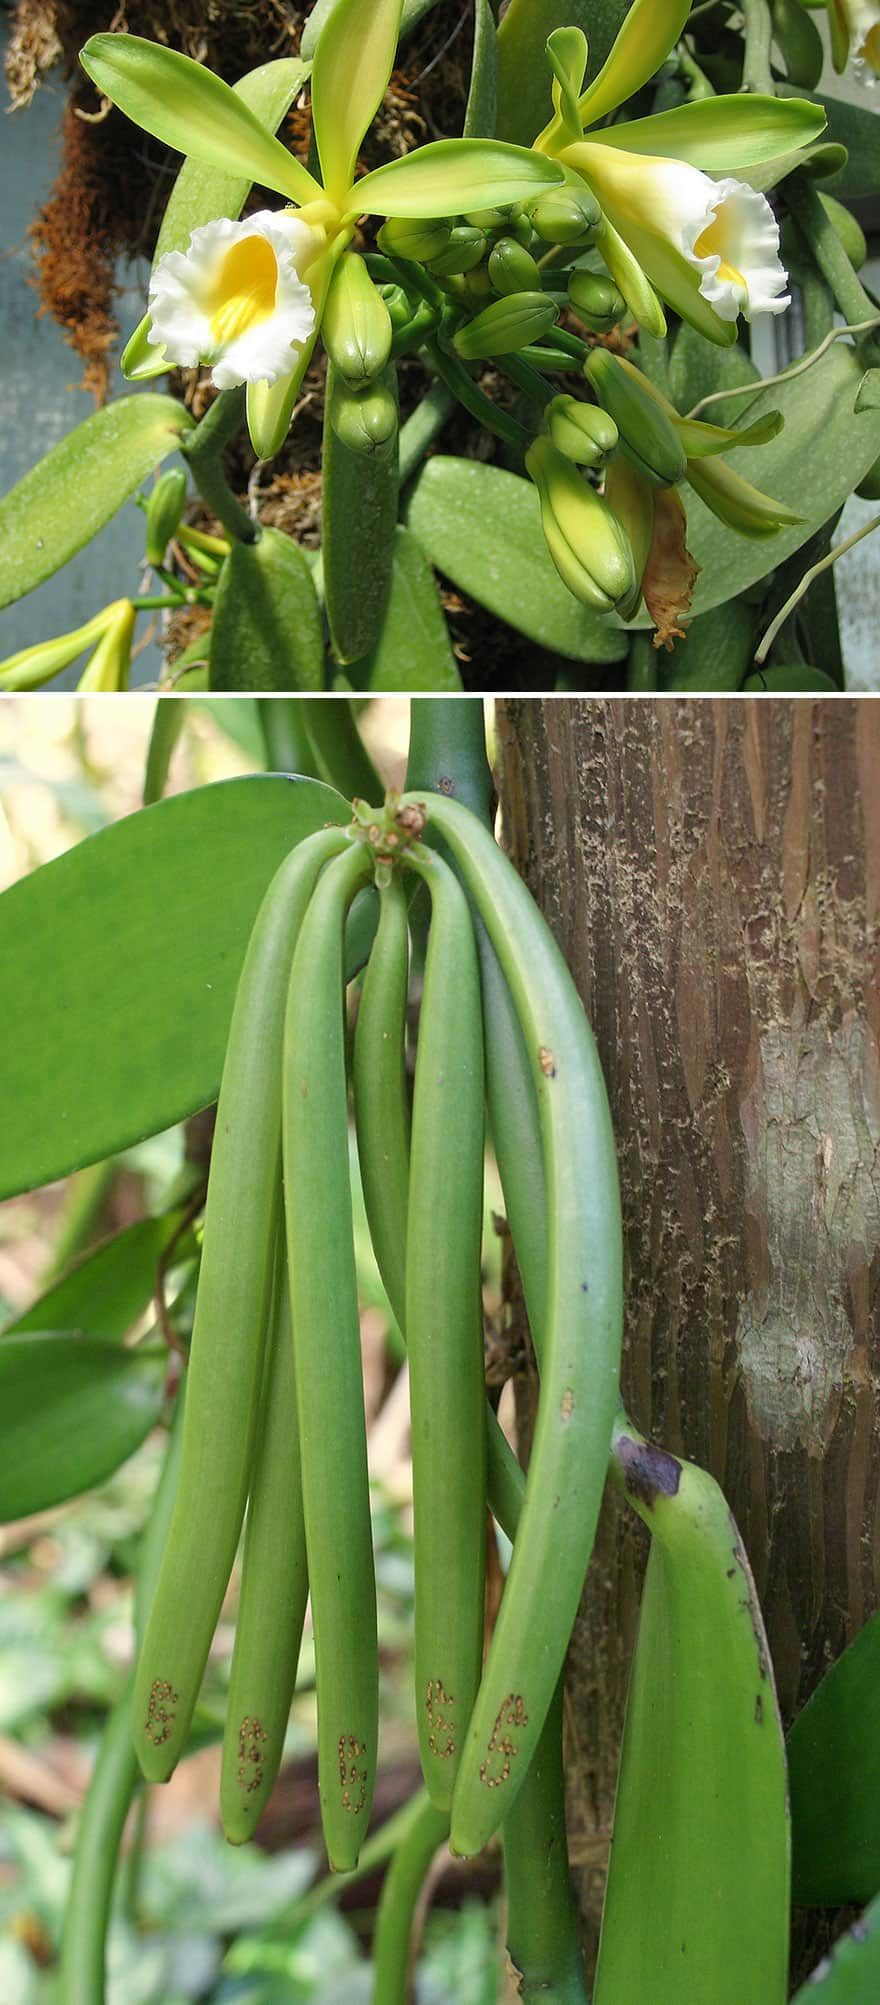 Vanilla pods hanging from a vine.